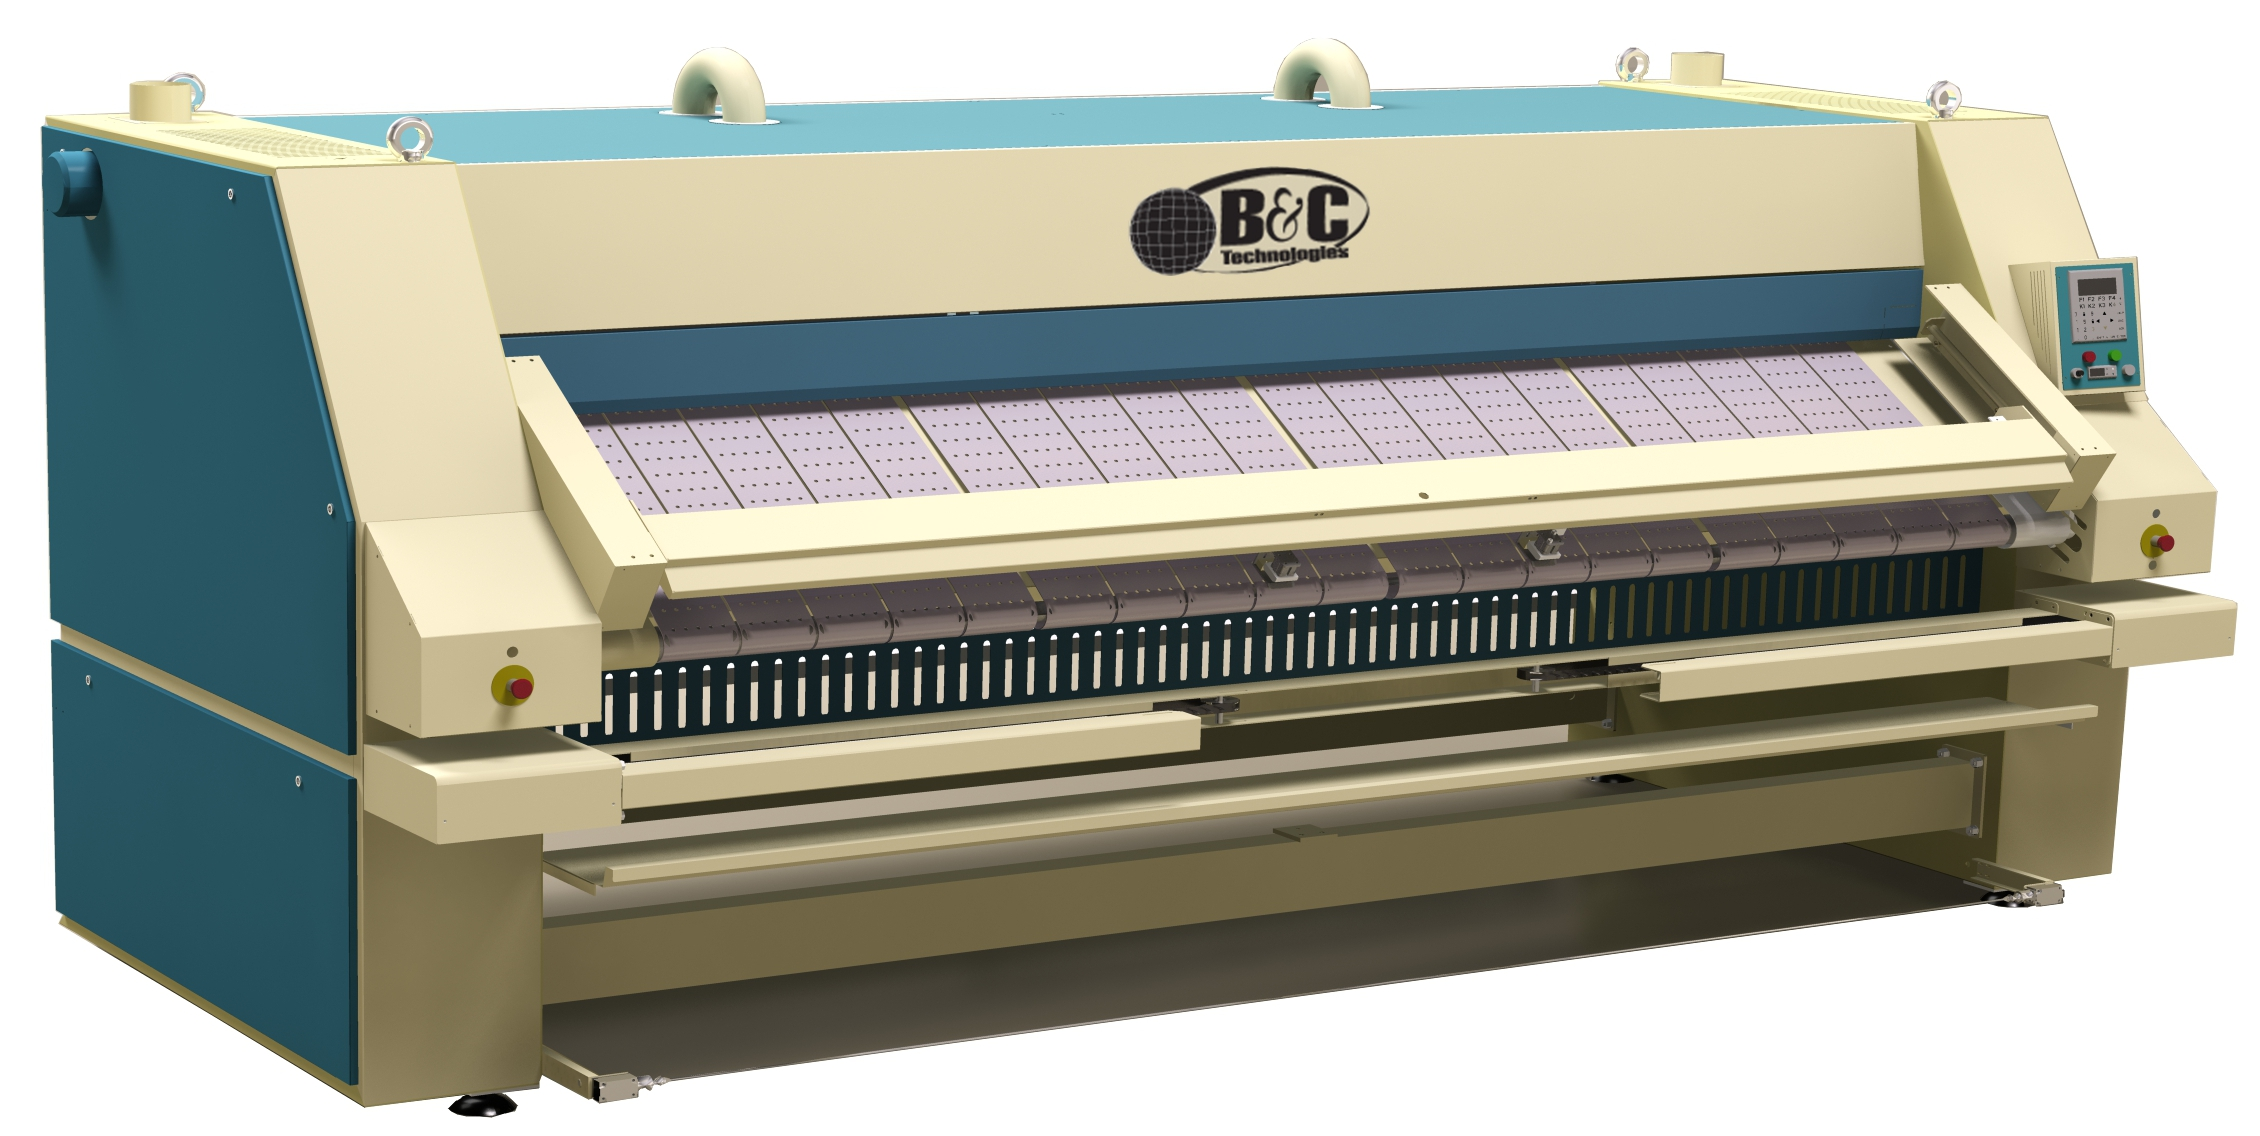 iq 32130 with feeder and folder